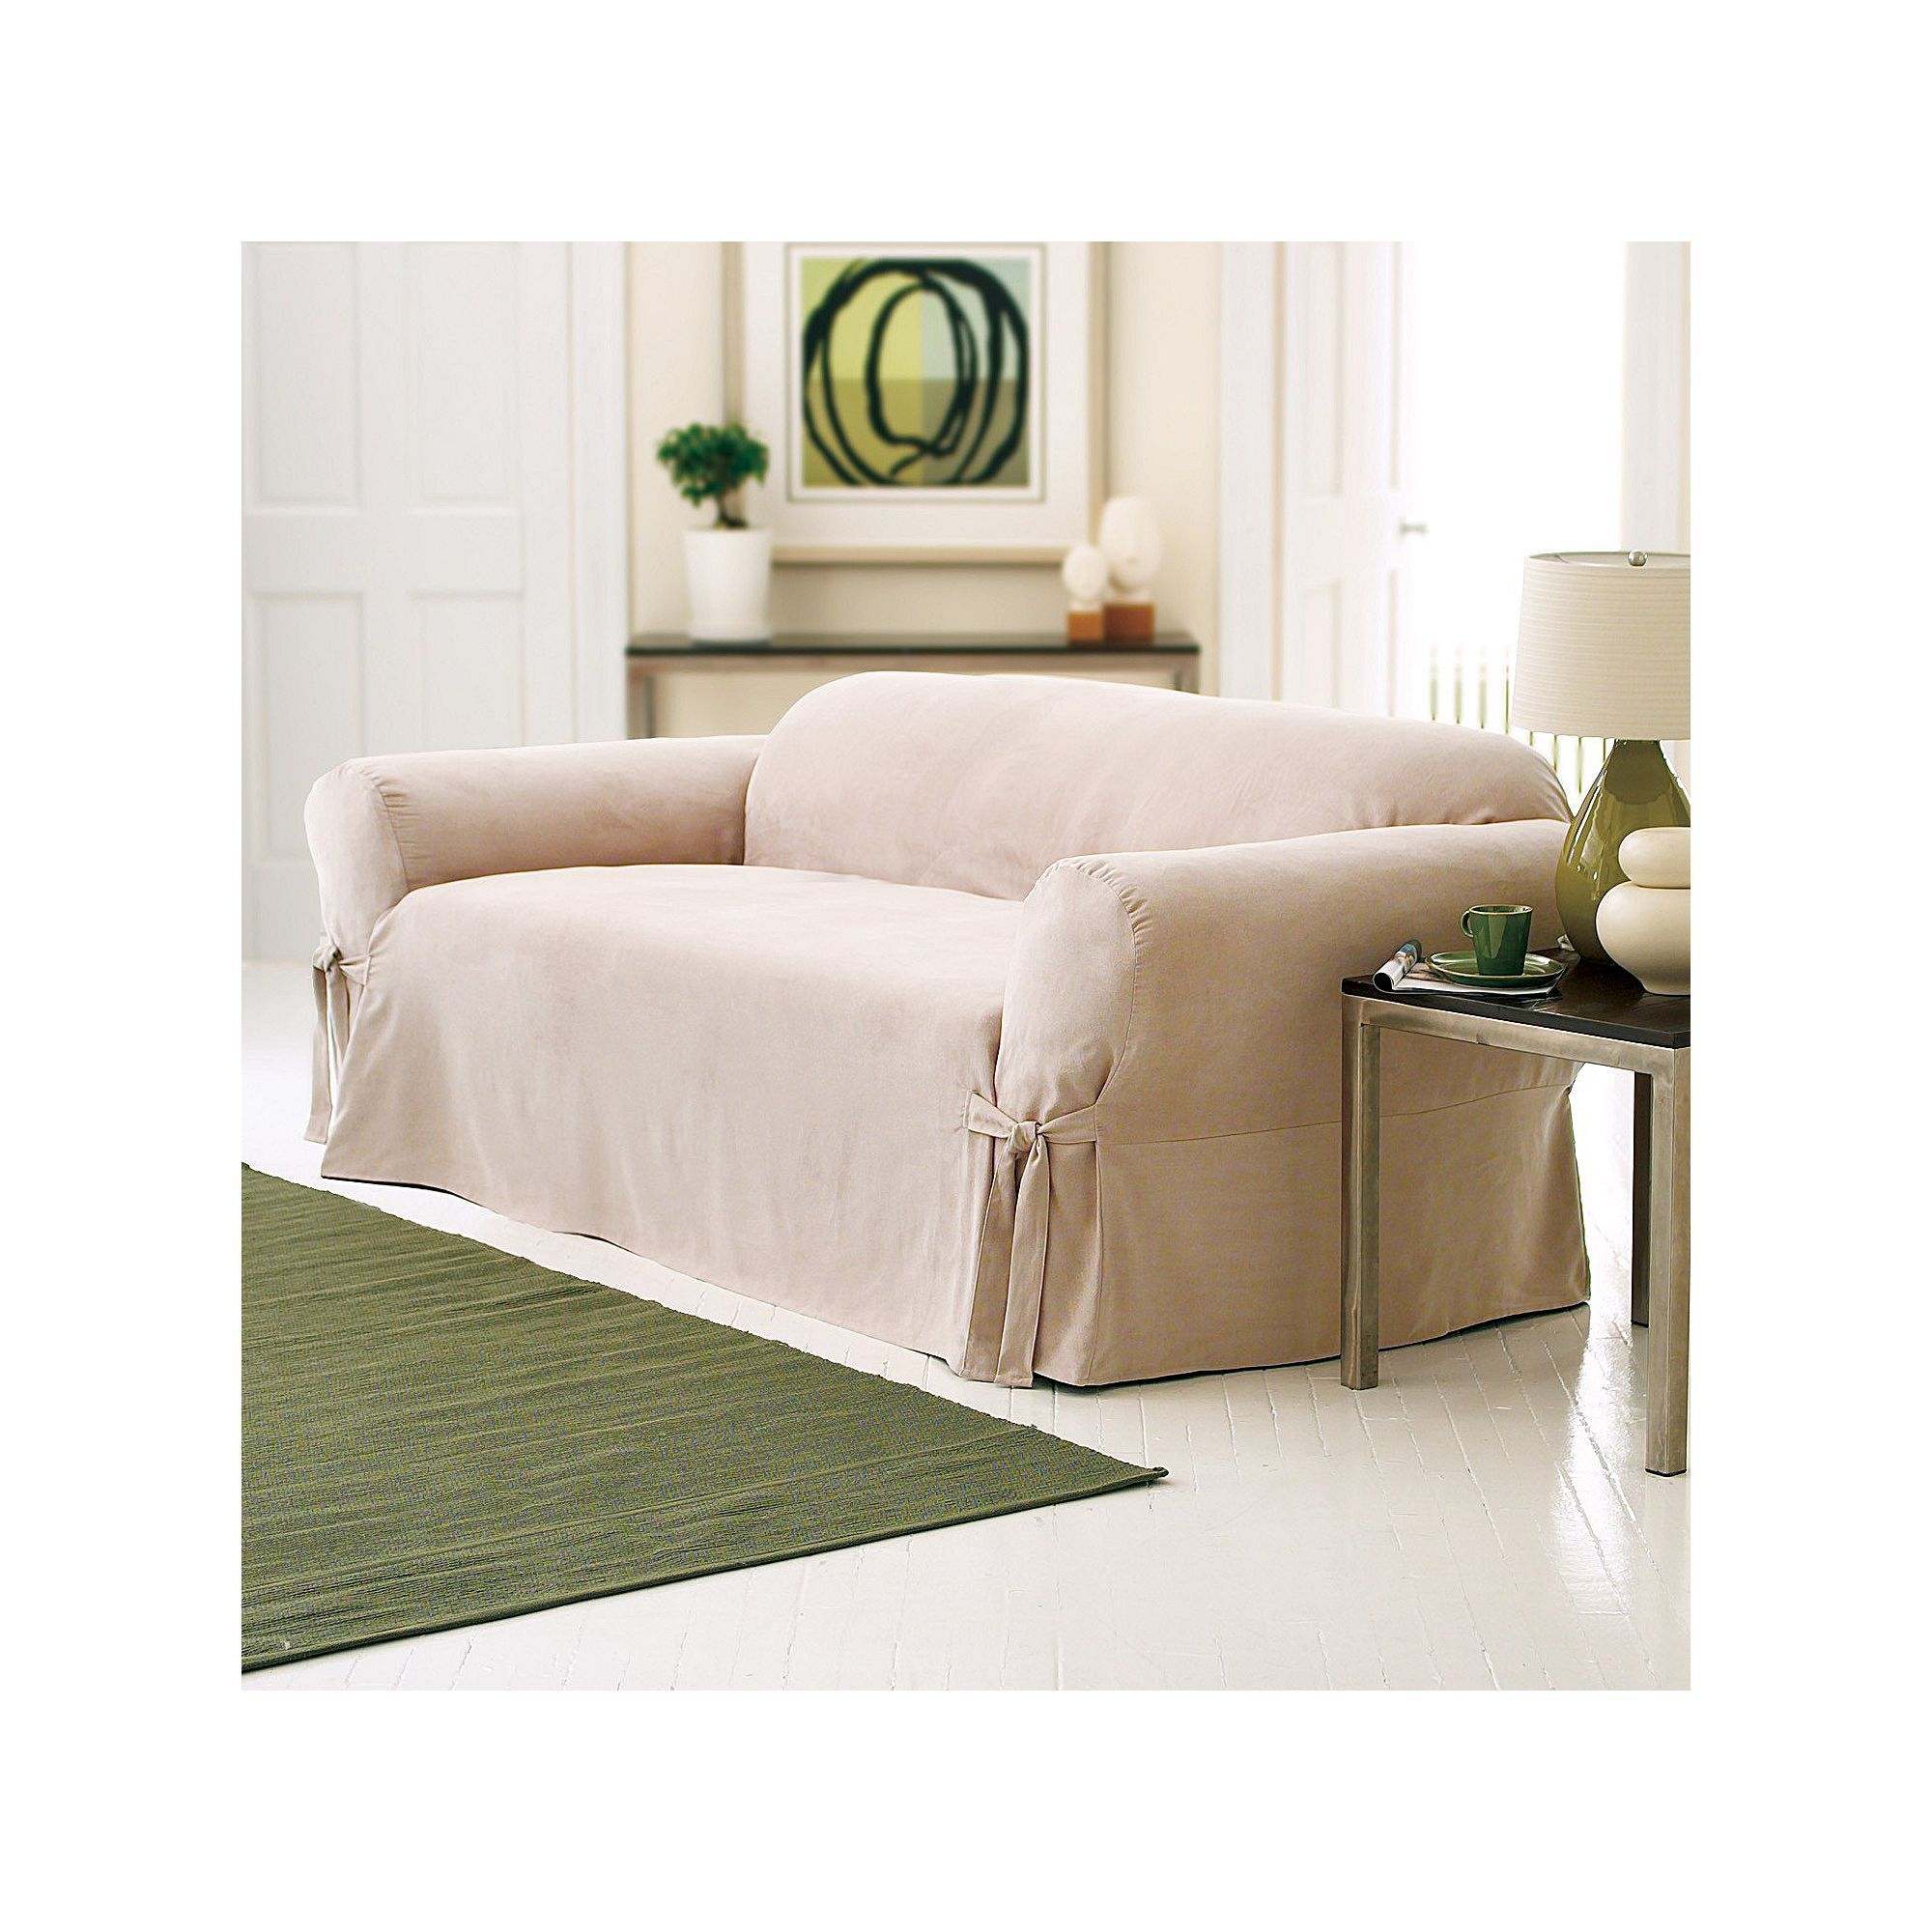 Faux Suede Sofa Cover Innovation Unfurl Deluxe Bed Protector Sure Fit Soft